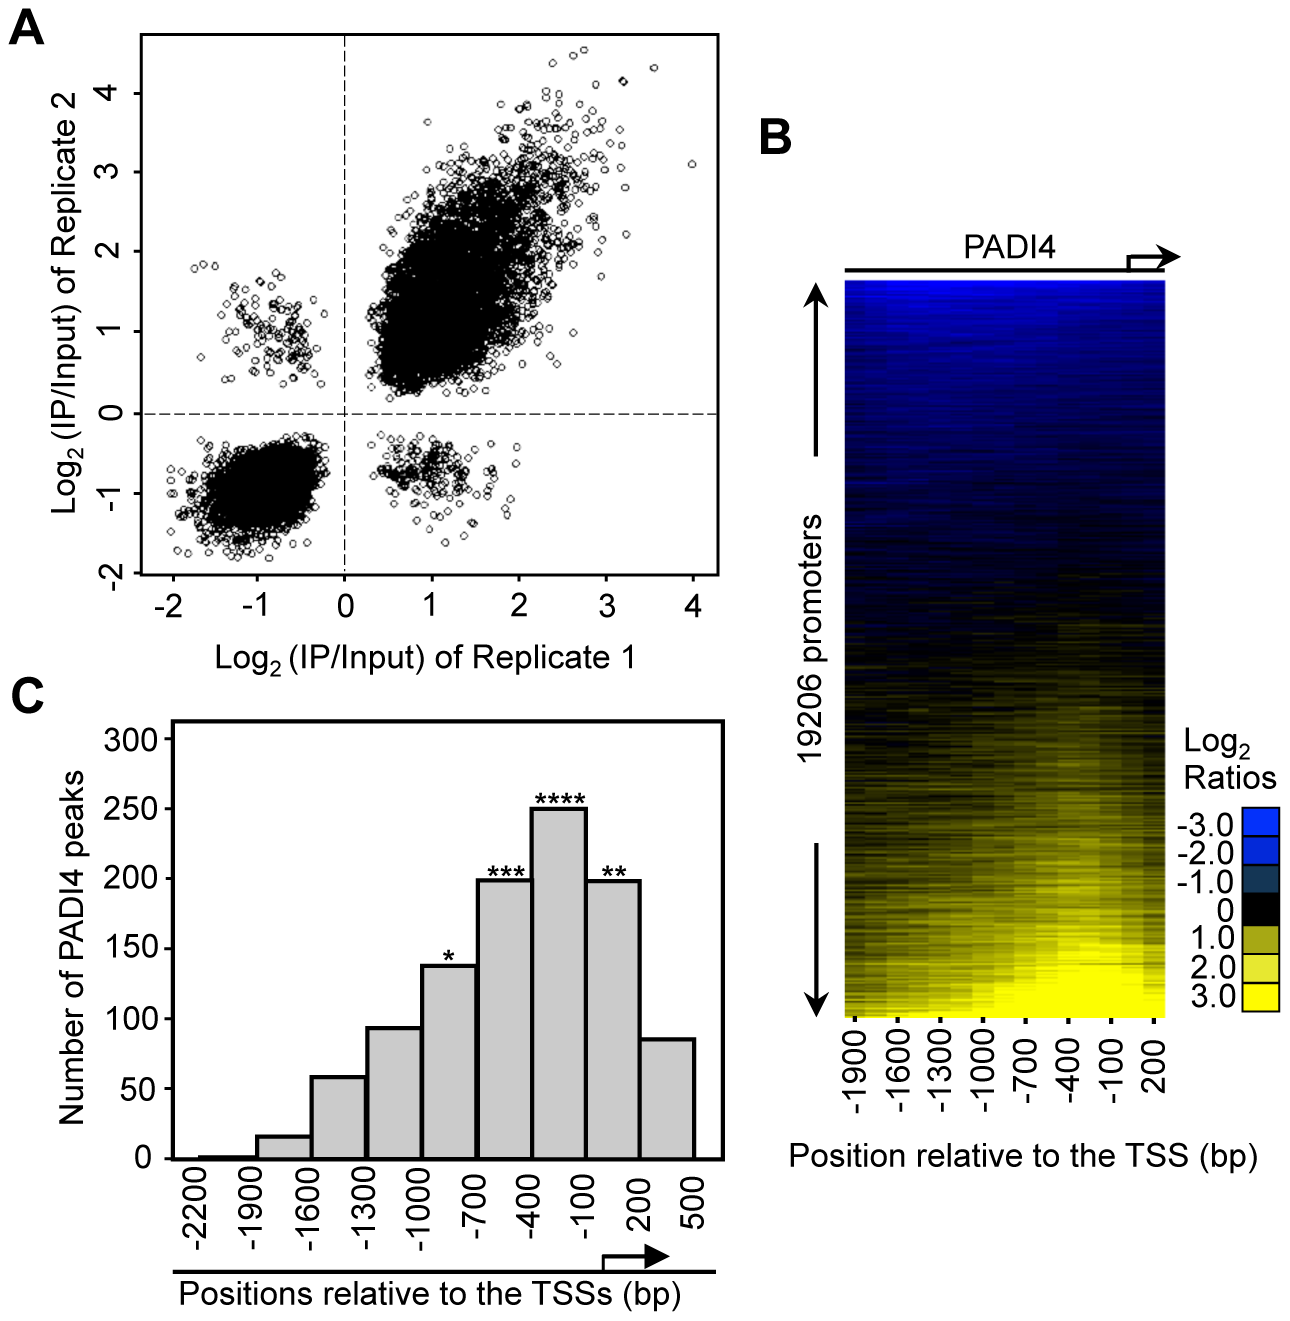 PADI4 is enriched in the gene promoter region near the TSSs.